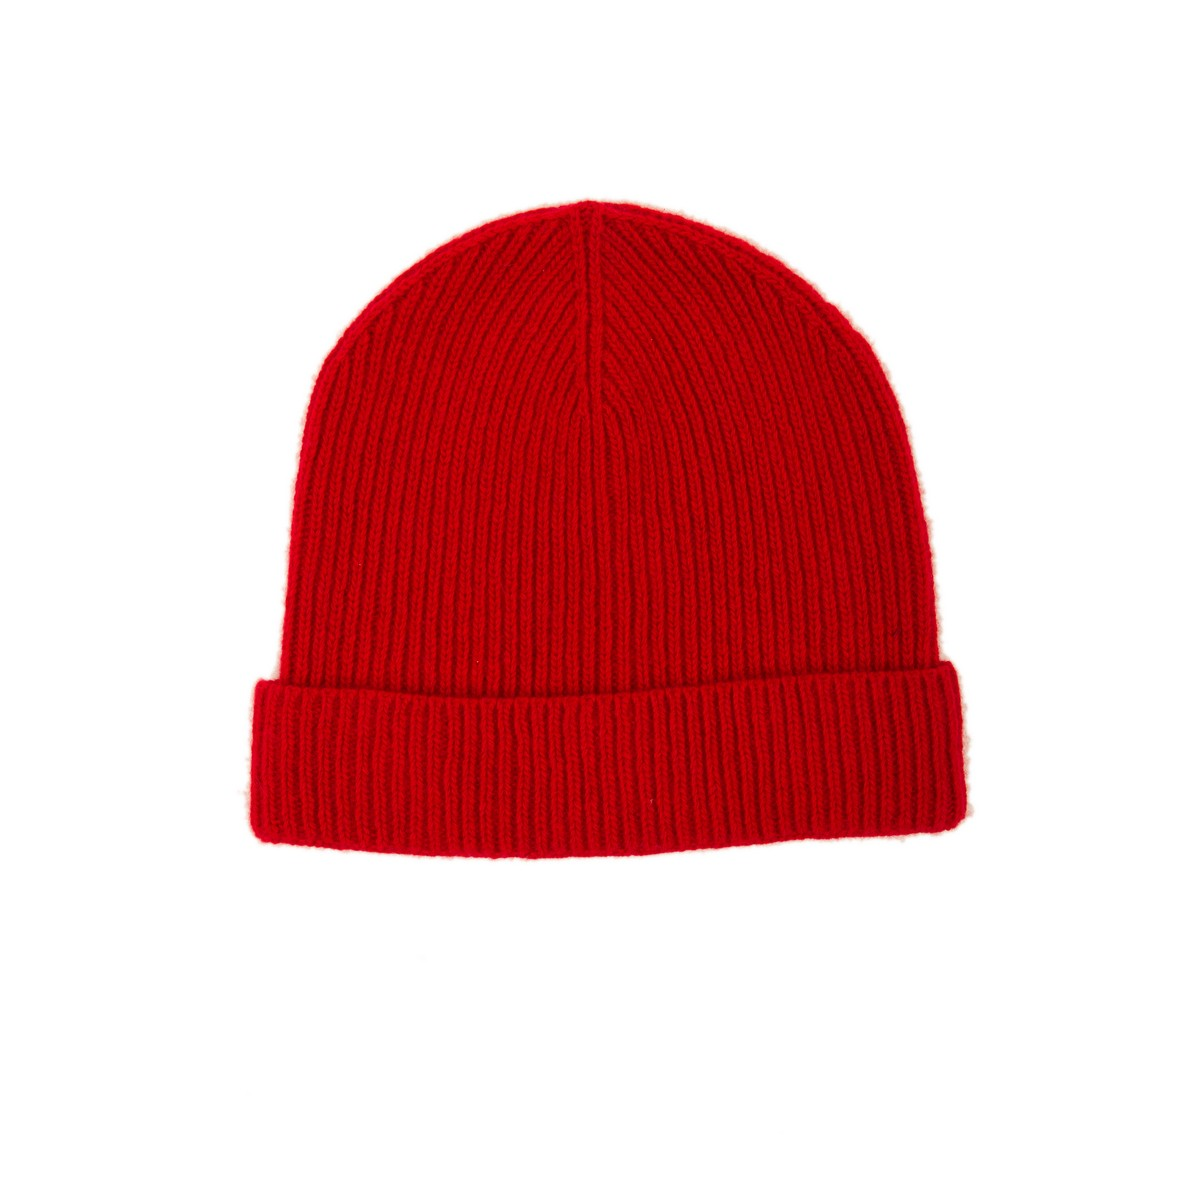 Beanie clipart red picture free Free Beanie Clipart woollen cap, Download Free Clip Art on Owips.com picture free